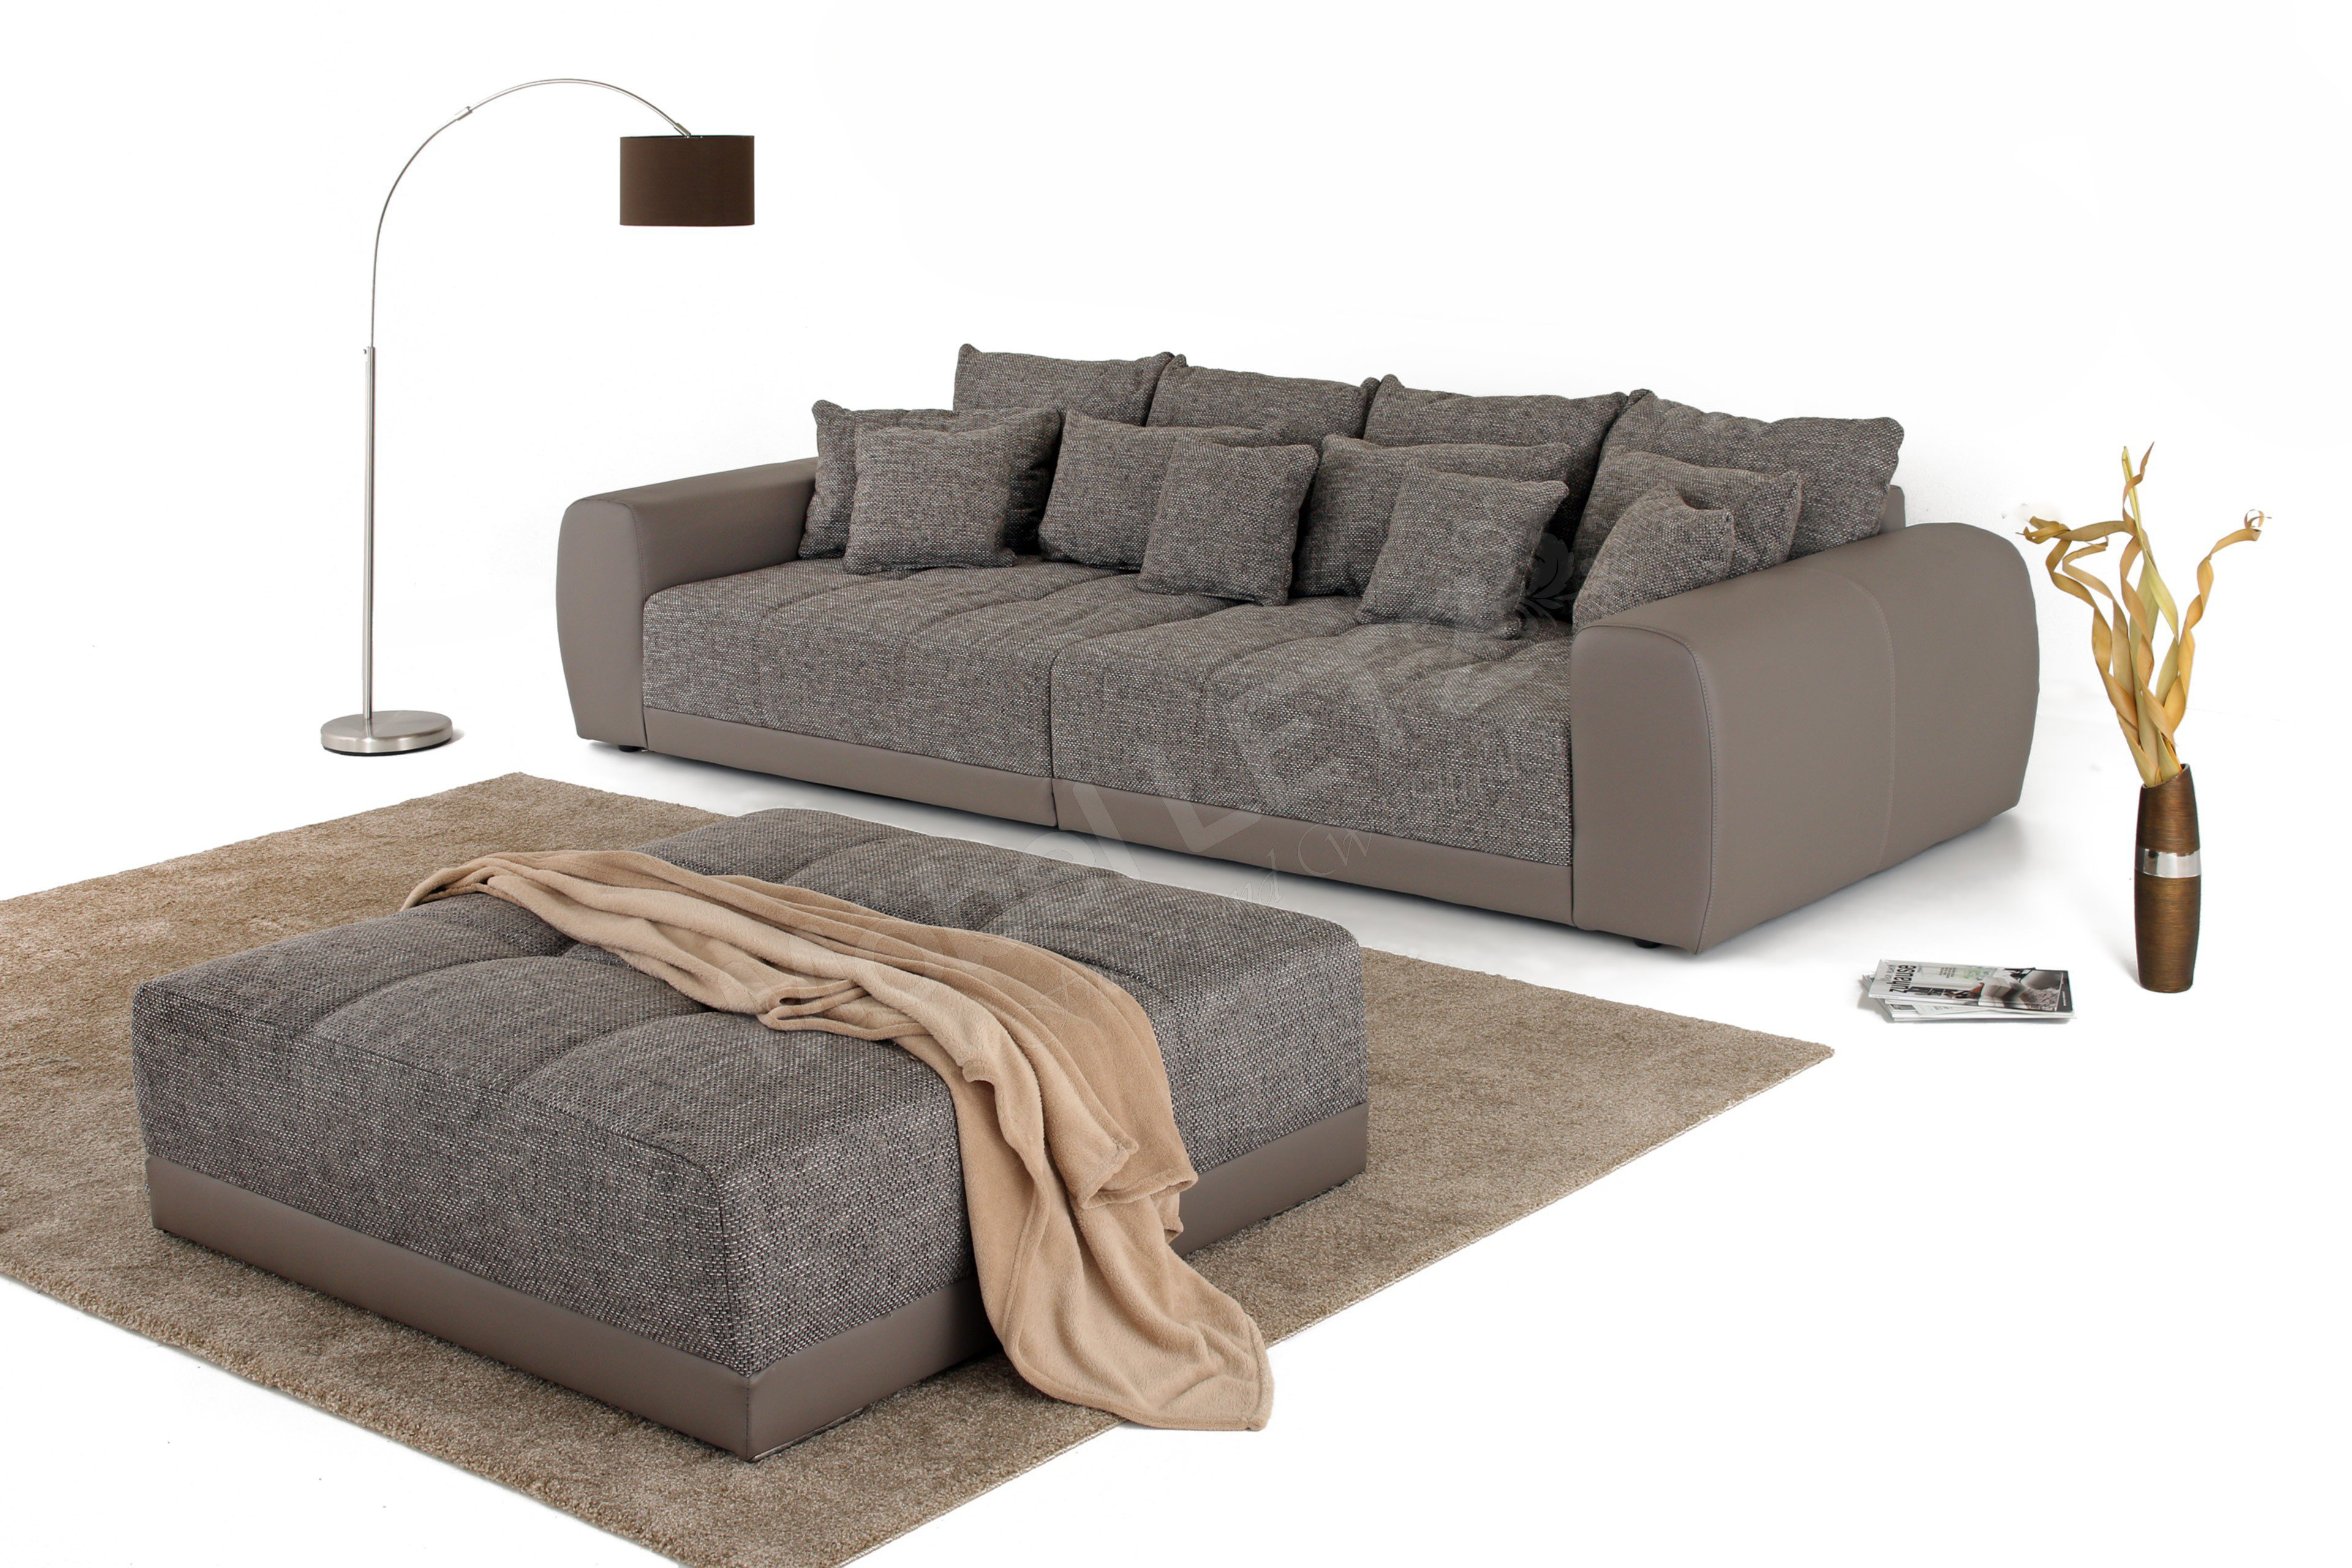 jockenh fer big sofa samy in braun m bel letz ihr online shop. Black Bedroom Furniture Sets. Home Design Ideas